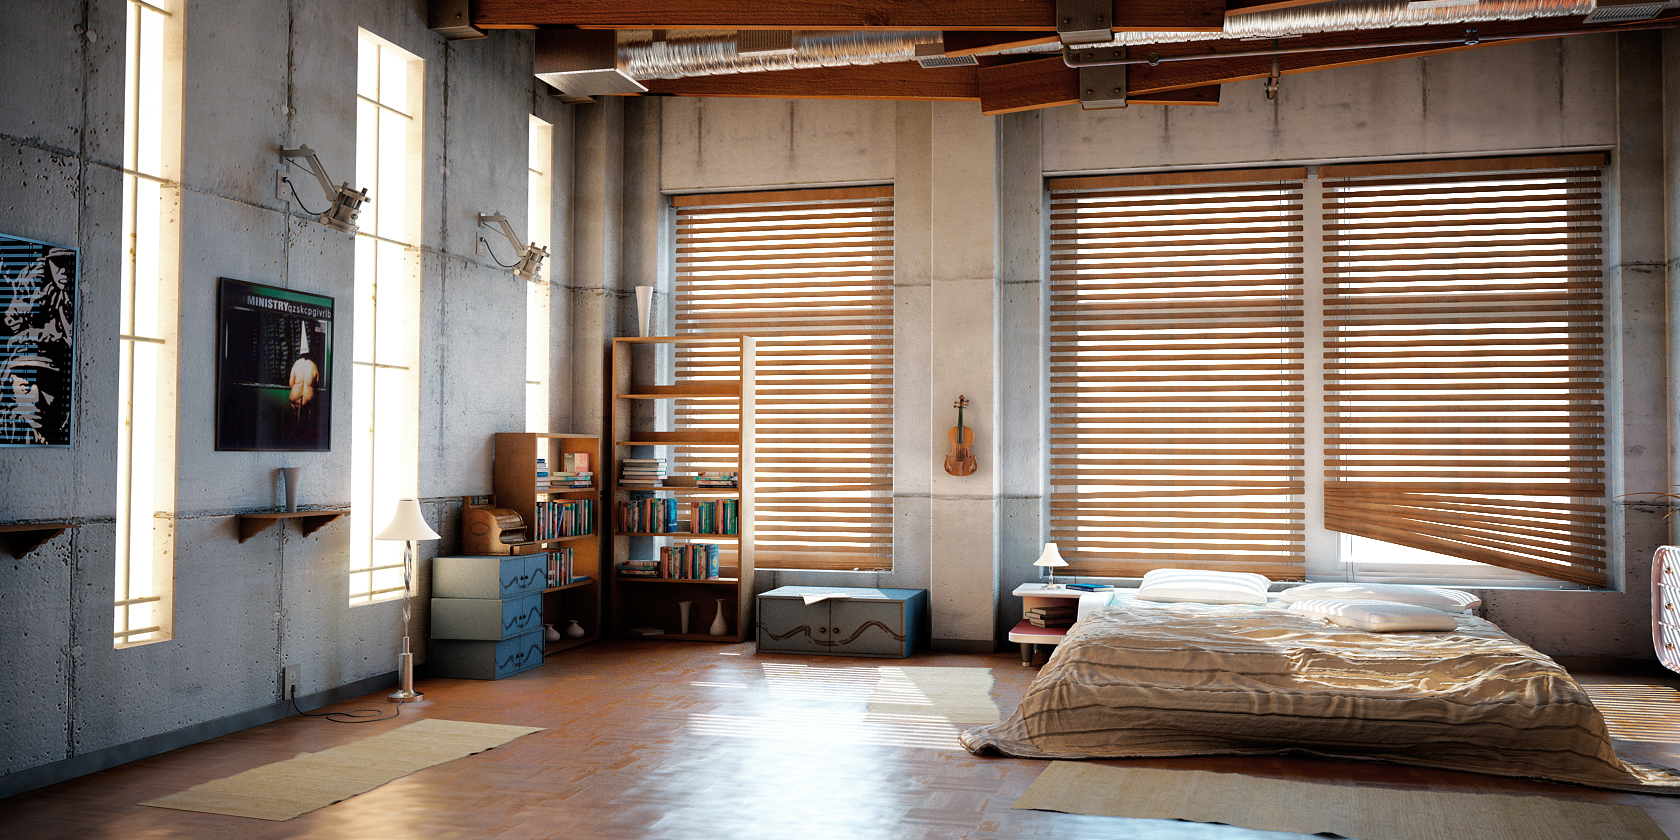 Industrial loft by denisvema on deviantart for Bedroom door ideas loft apartment